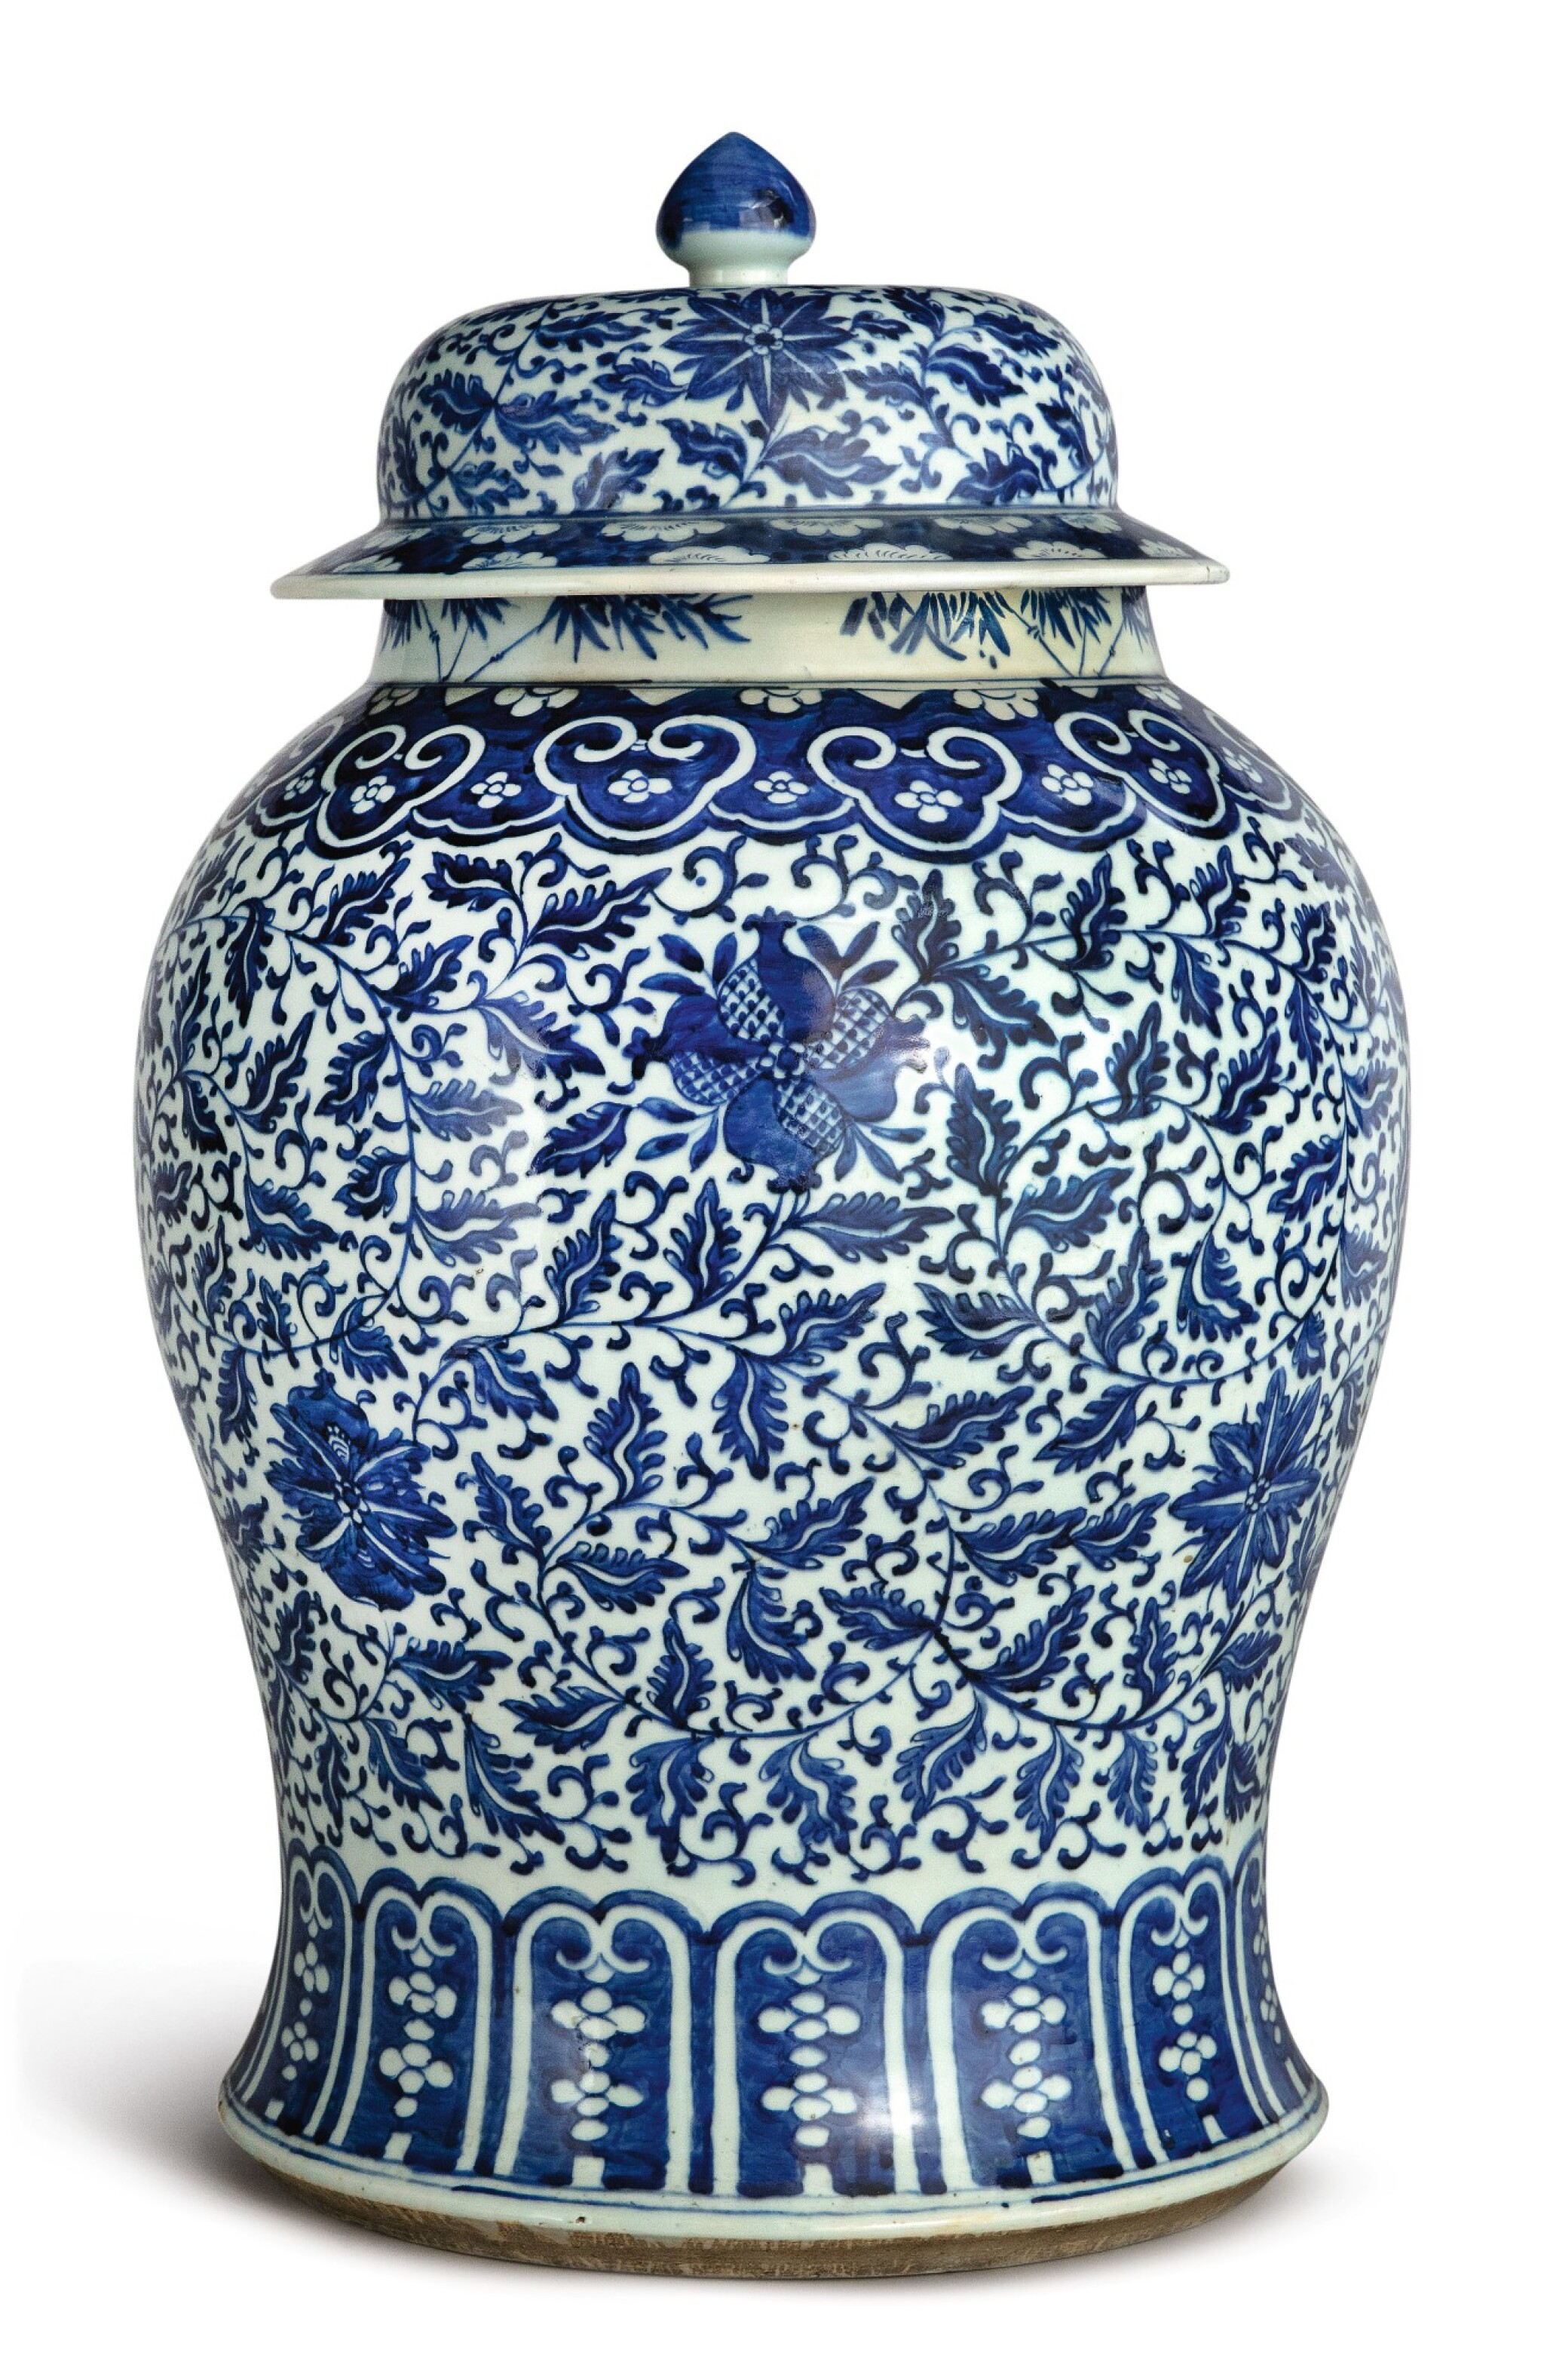 View 1 of Lot 1133. A BLUE AND WHITE 'FLORAL' BALUSTER JAR AND COVER, 19TH CENTURY.